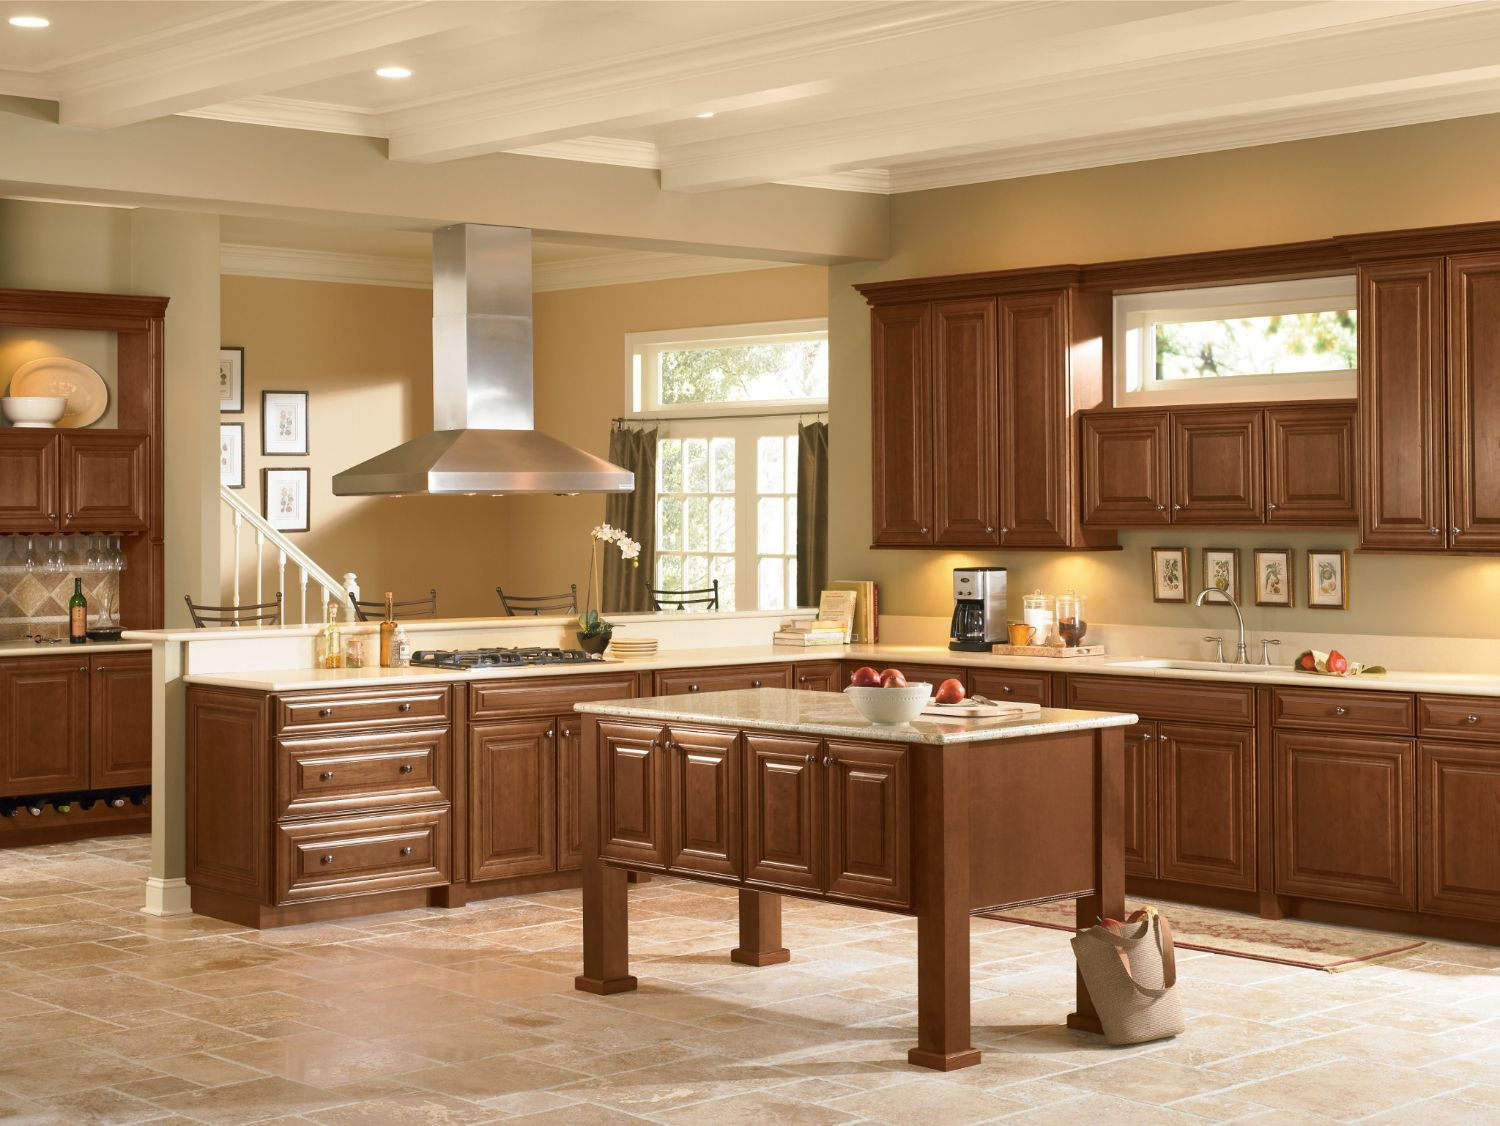 Mckinley Shenandoah Cabinetry Just Imagine It In Linen White From Lowe S Maple Kitchen Cabinets Kitchen Design Kitchen Cabinets